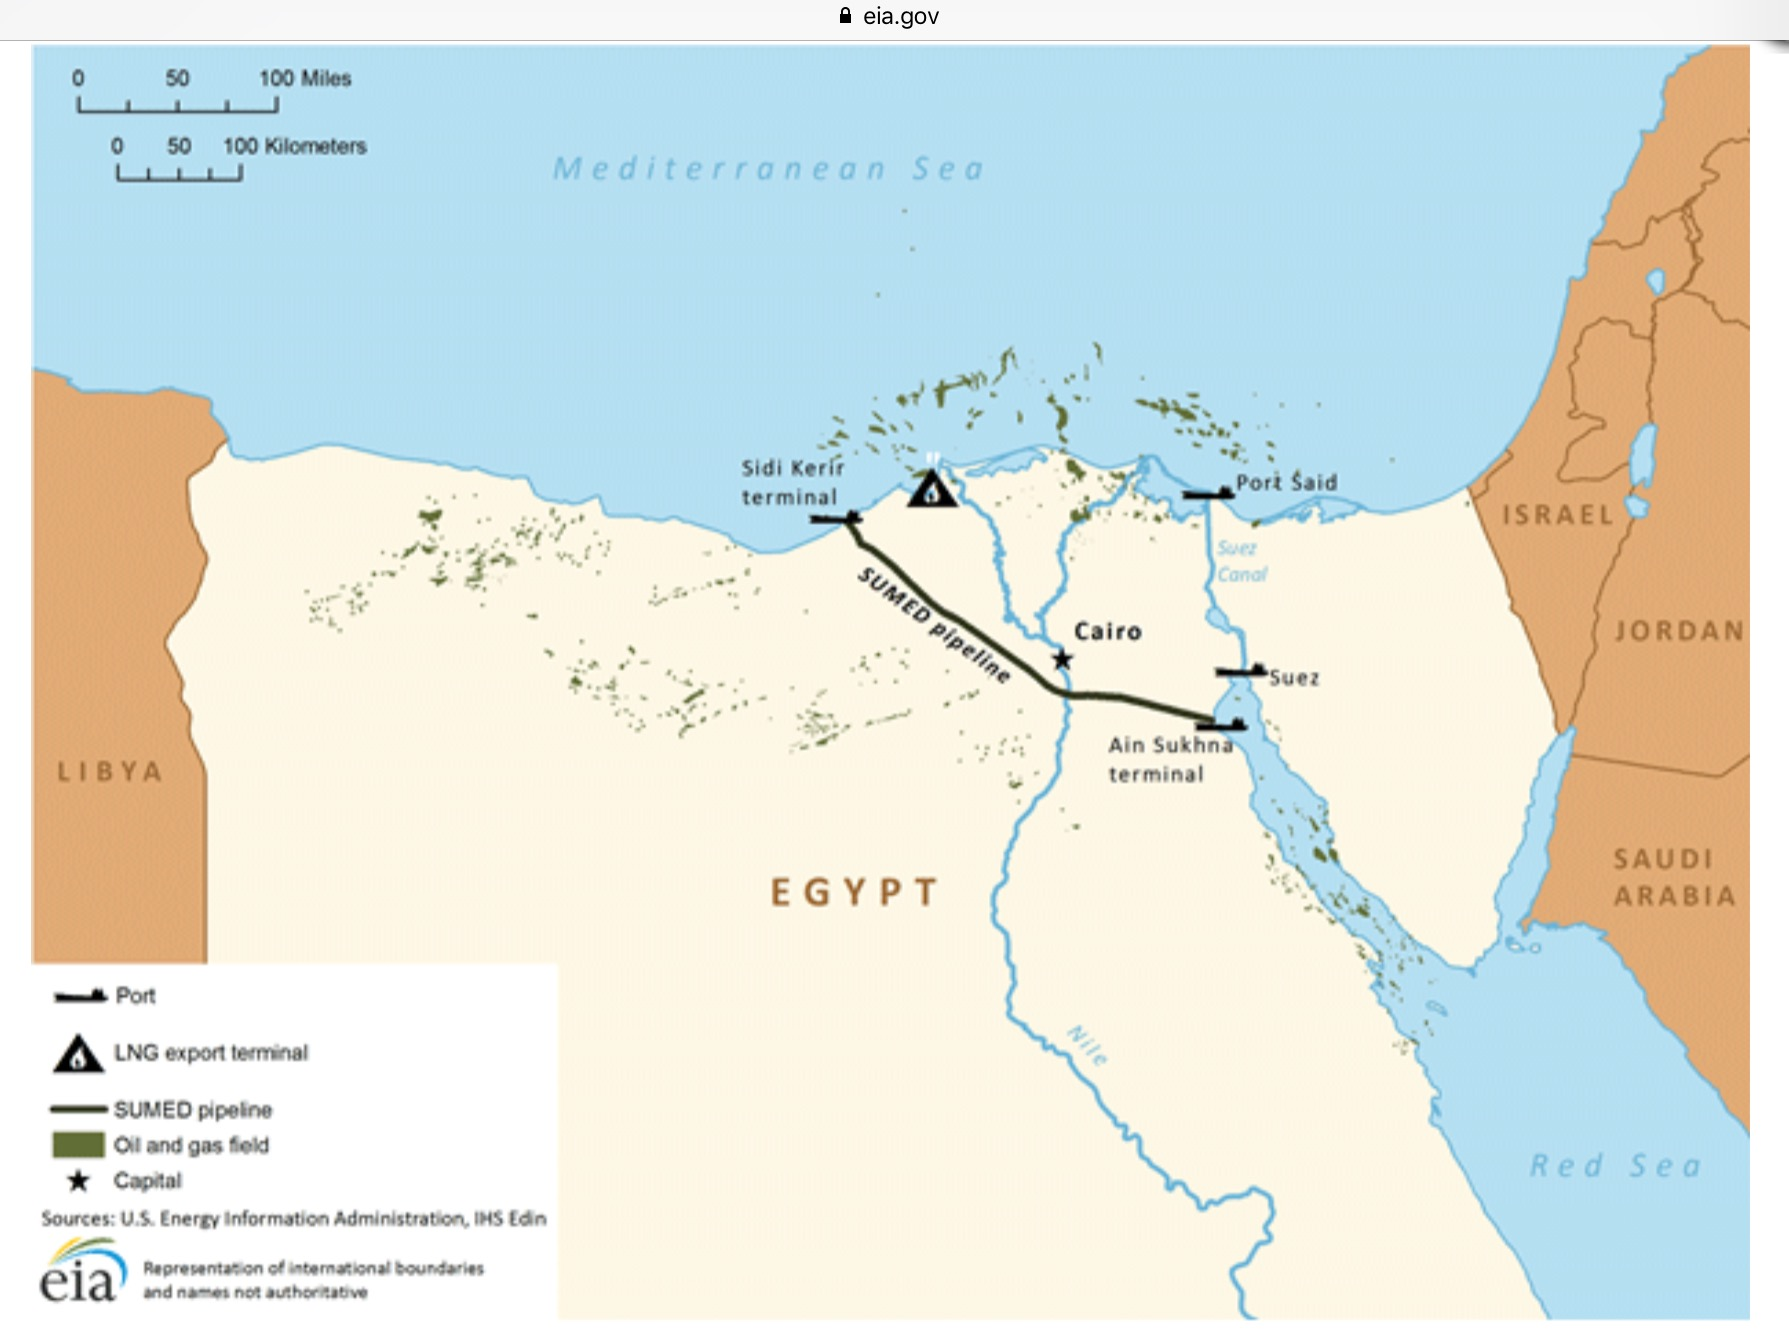 Suez Canal SUMED pipeline EIA gov map Mining Awareness